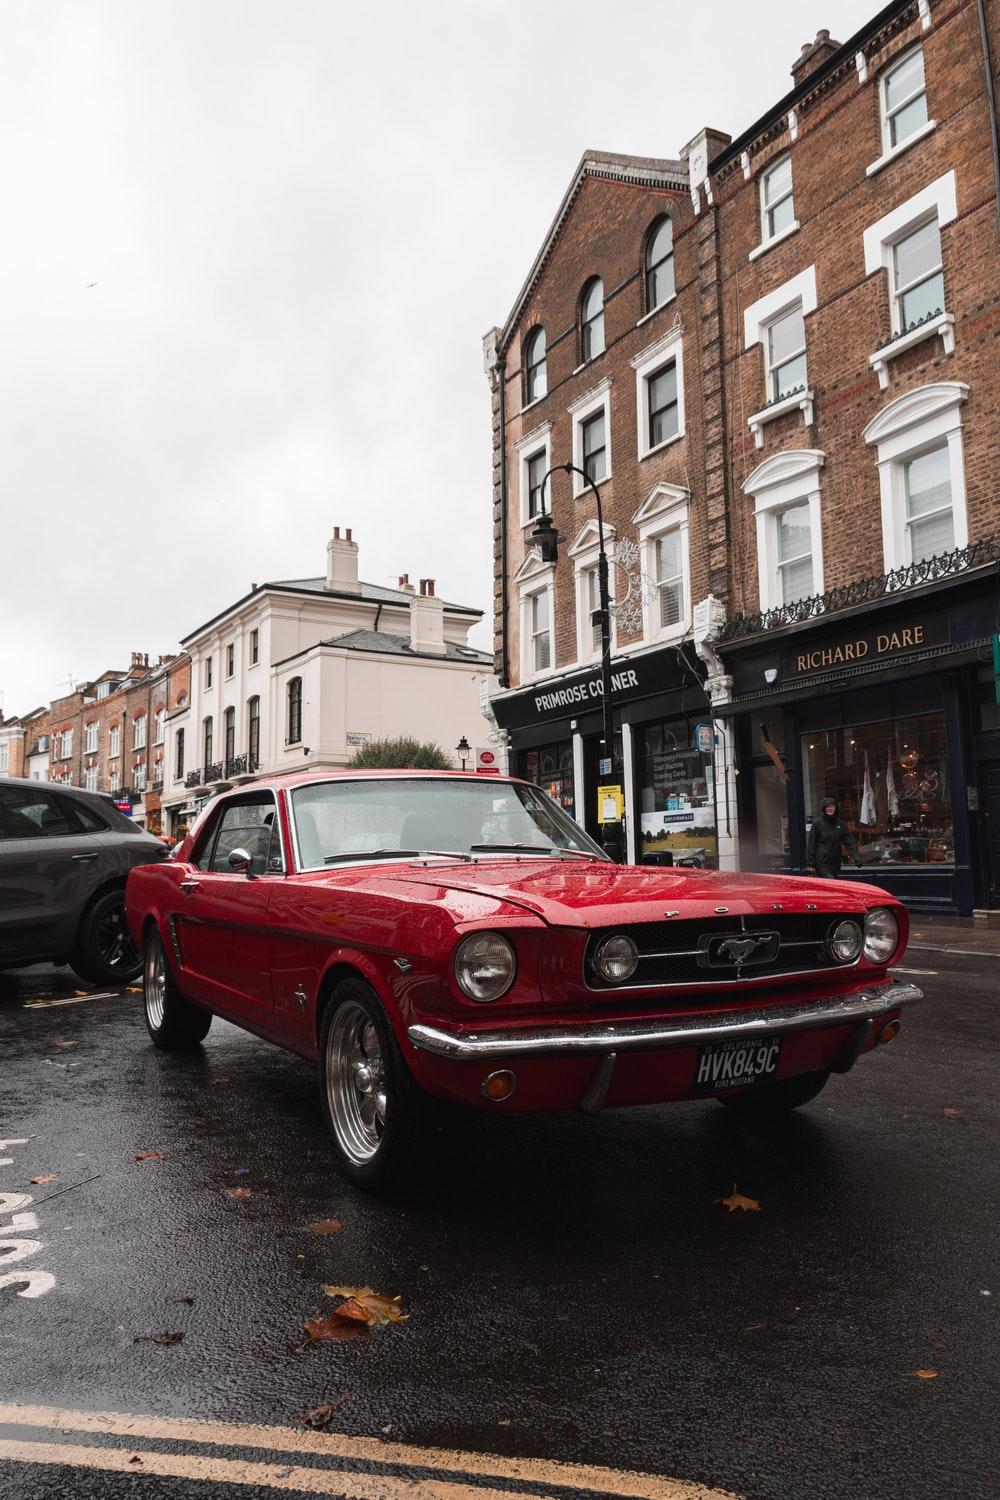 classic parked red Ford Mustang coupe near buildings and cars during day